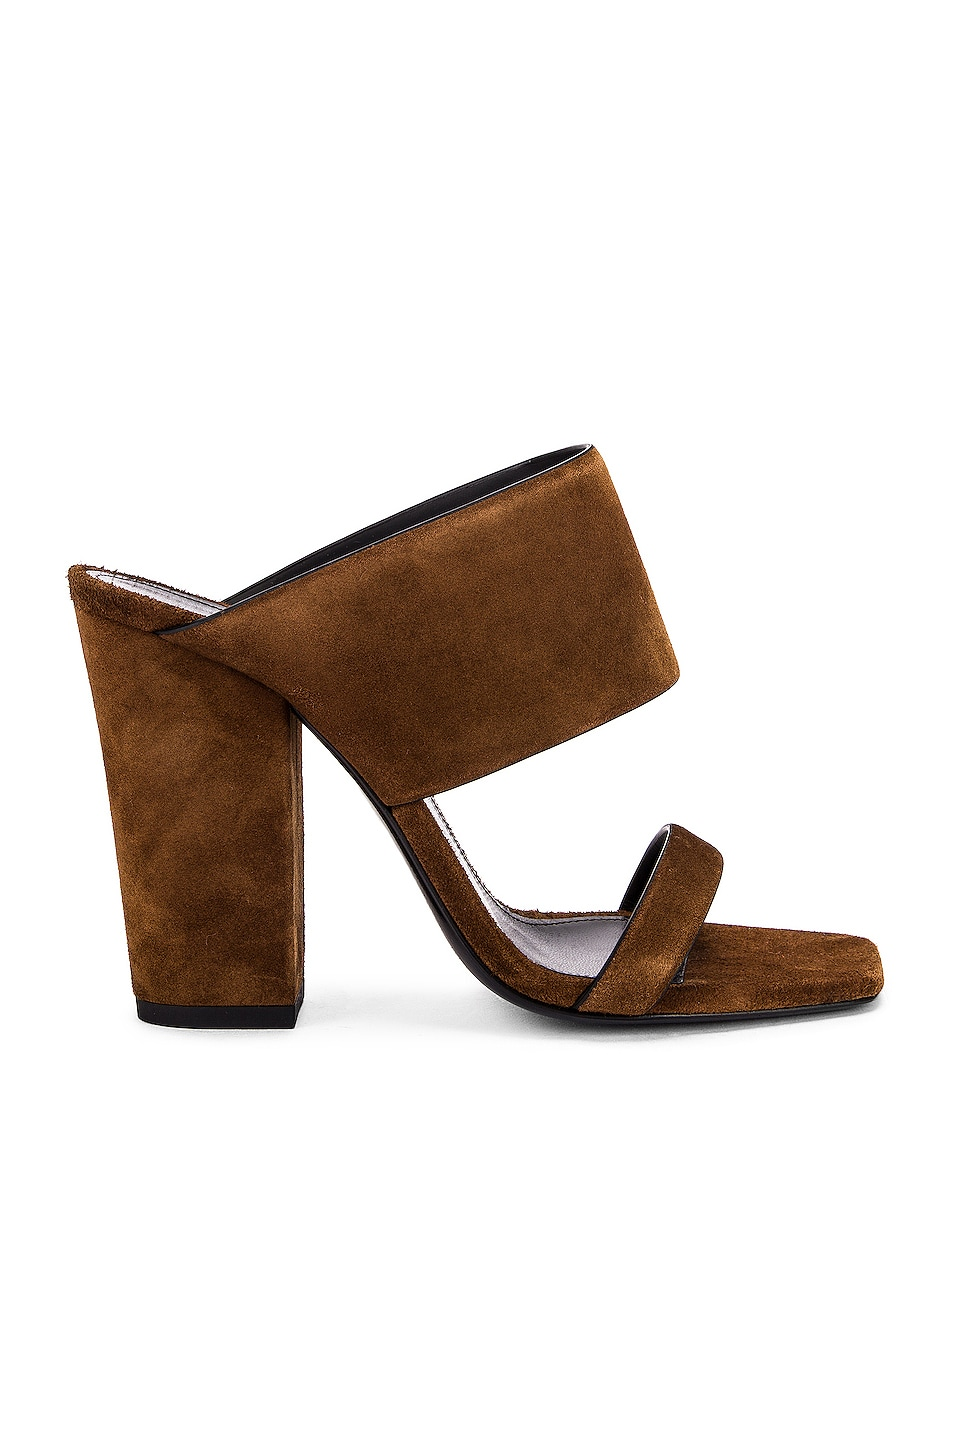 Image 1 of Saint Laurent Suede Oak Mules in Caramel